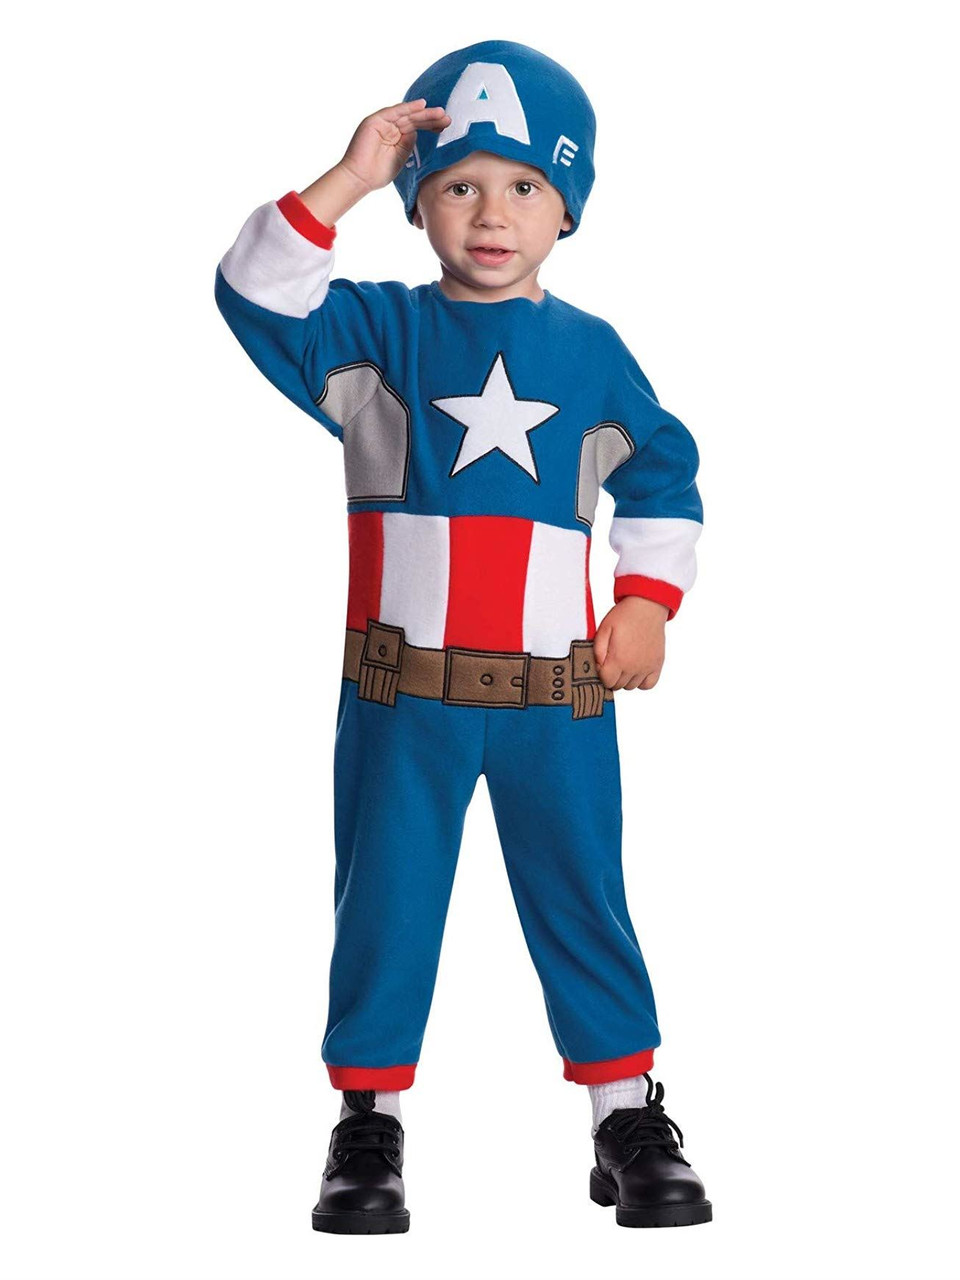 Rubie S Costume Baby S Marvel Classics Avengers Assemble Captain America Costume Costumeville Check out our captain marvel costume selection for the very best in unique or custom, handmade pieces from our costumes shops. costumeville